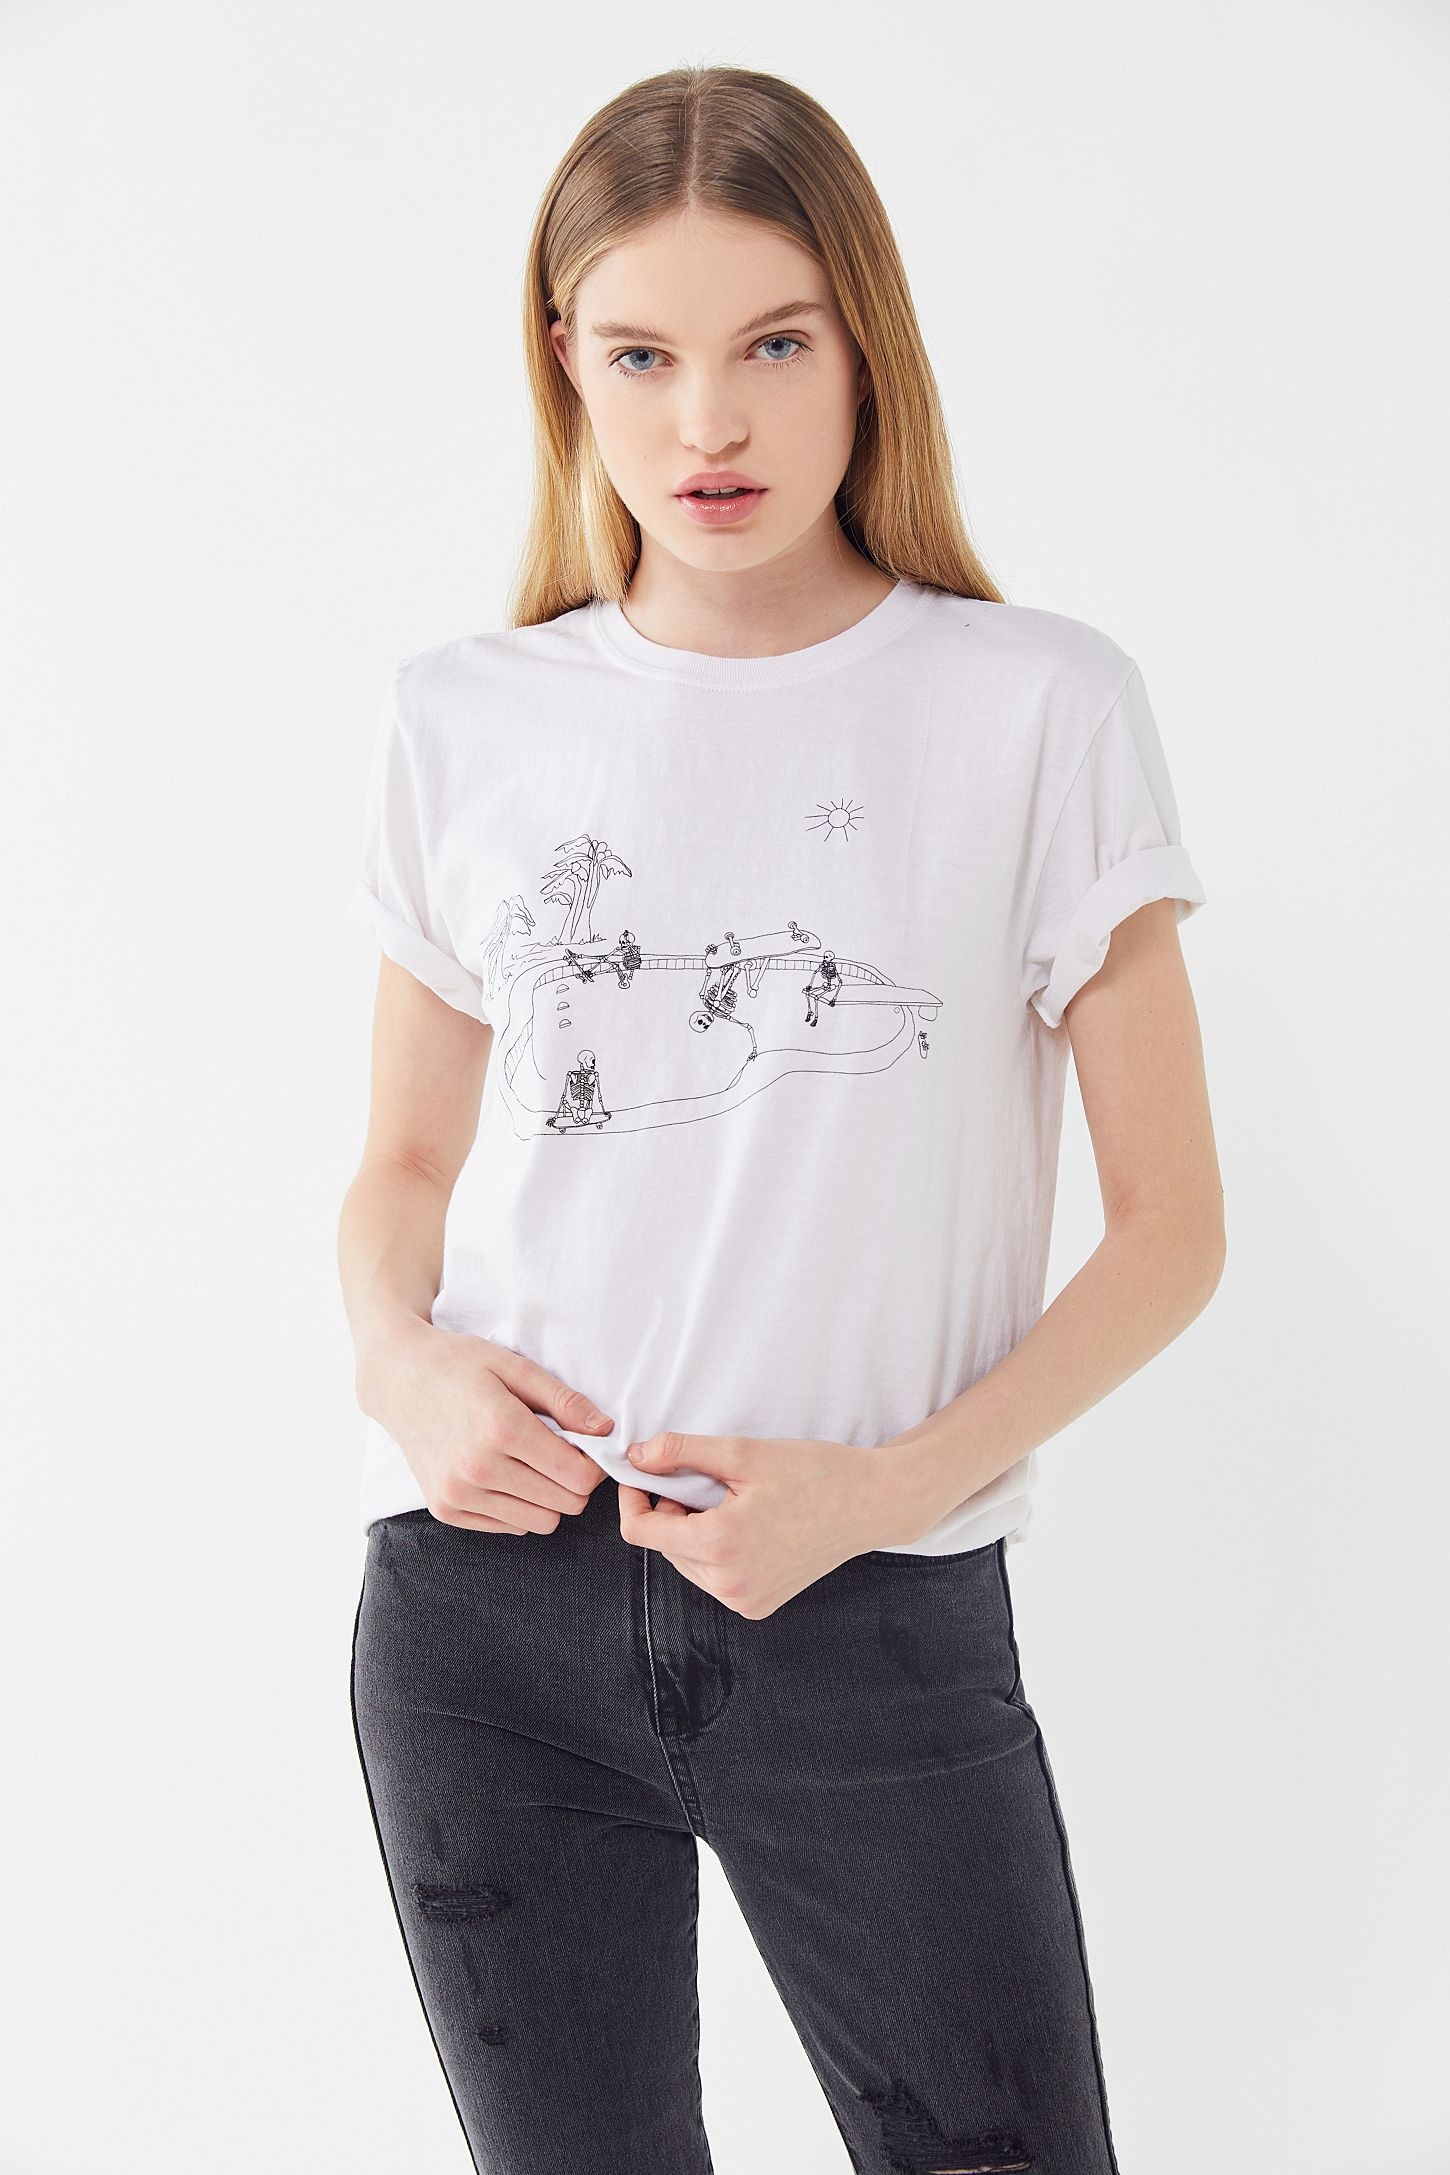 a44e421780b Project Social T Skeleton Buddies Skate Tee | Urban Outfitters